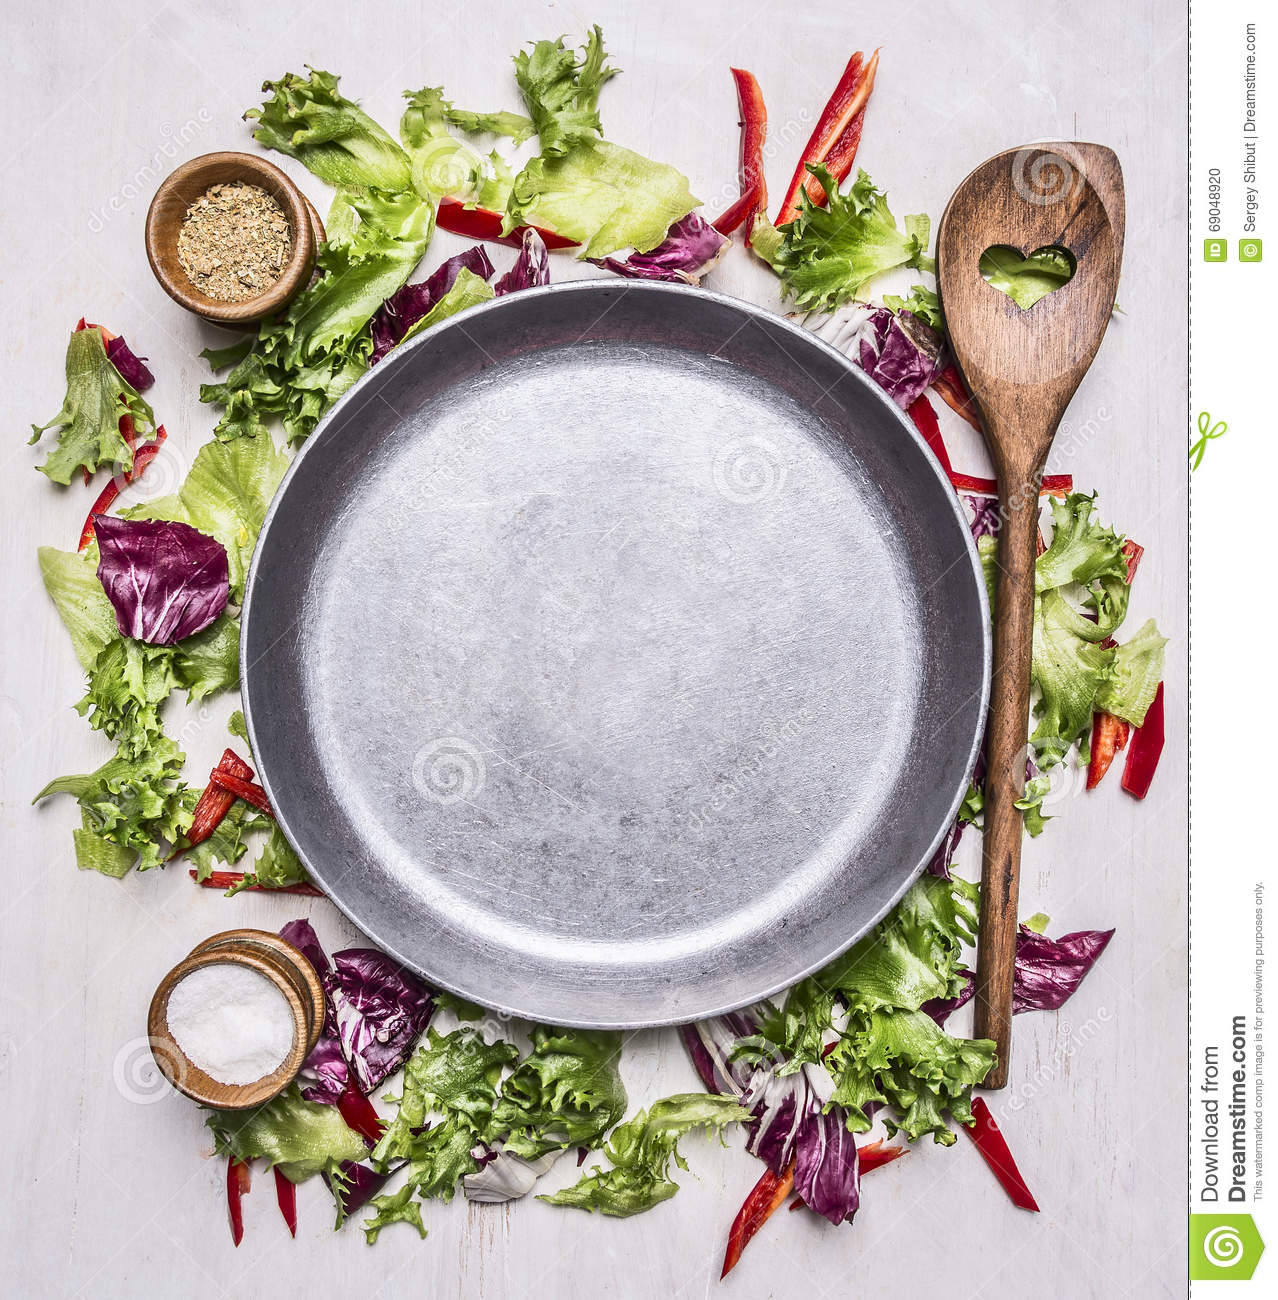 Healthy foods, cooking and vegetarian concept lettuce with a wooden spoon, salt and pepper, laid out around pan place for text